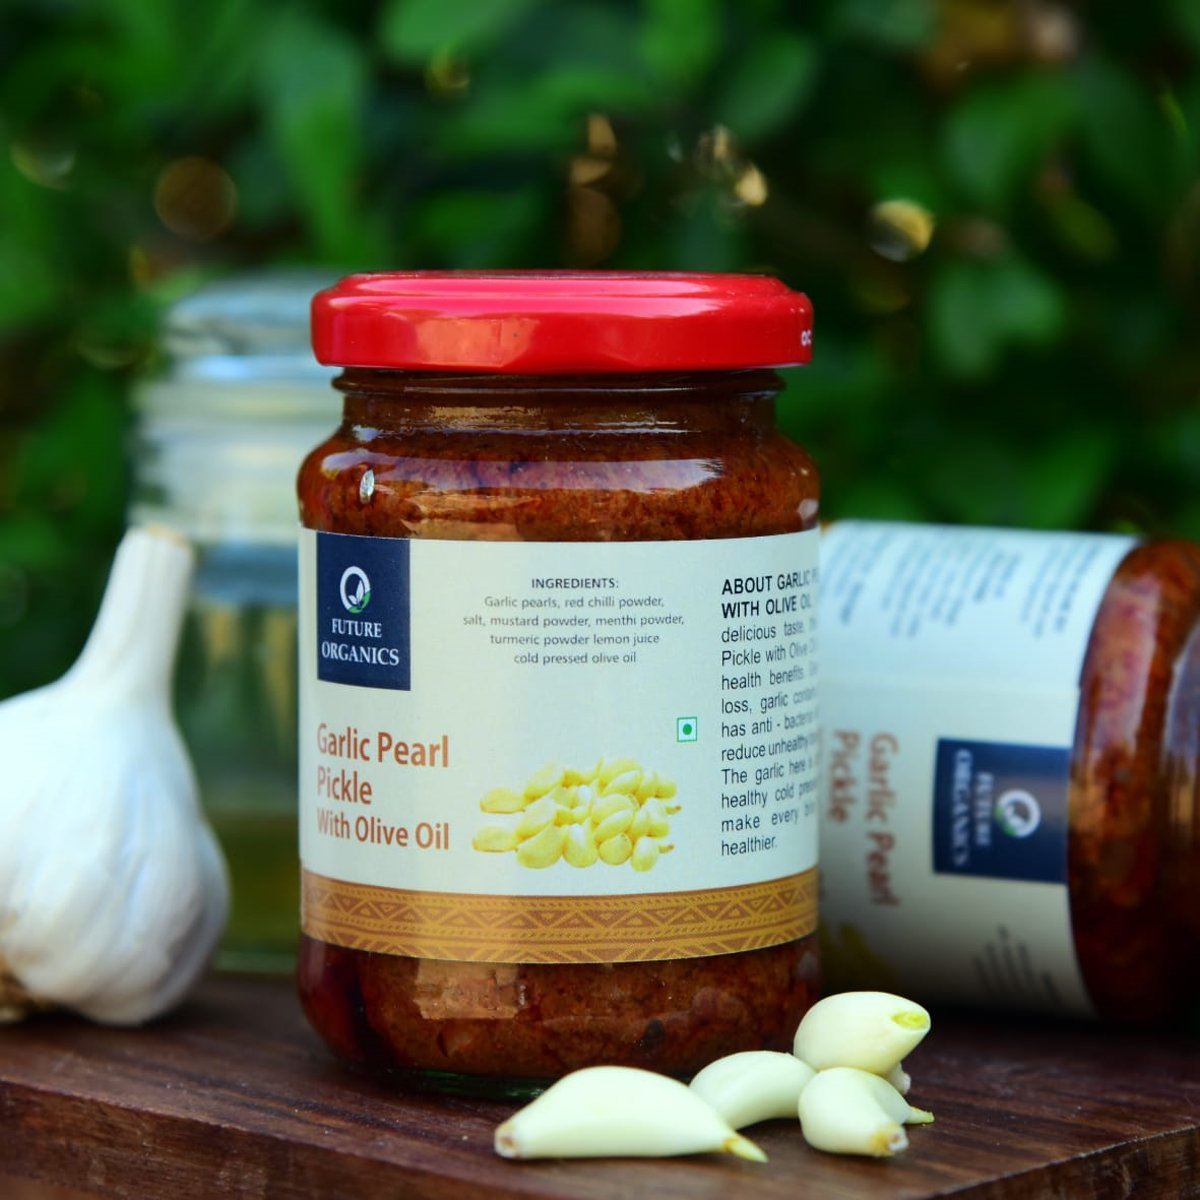 Garlic Pearl Pickle – With Olive Oil(set of 2)